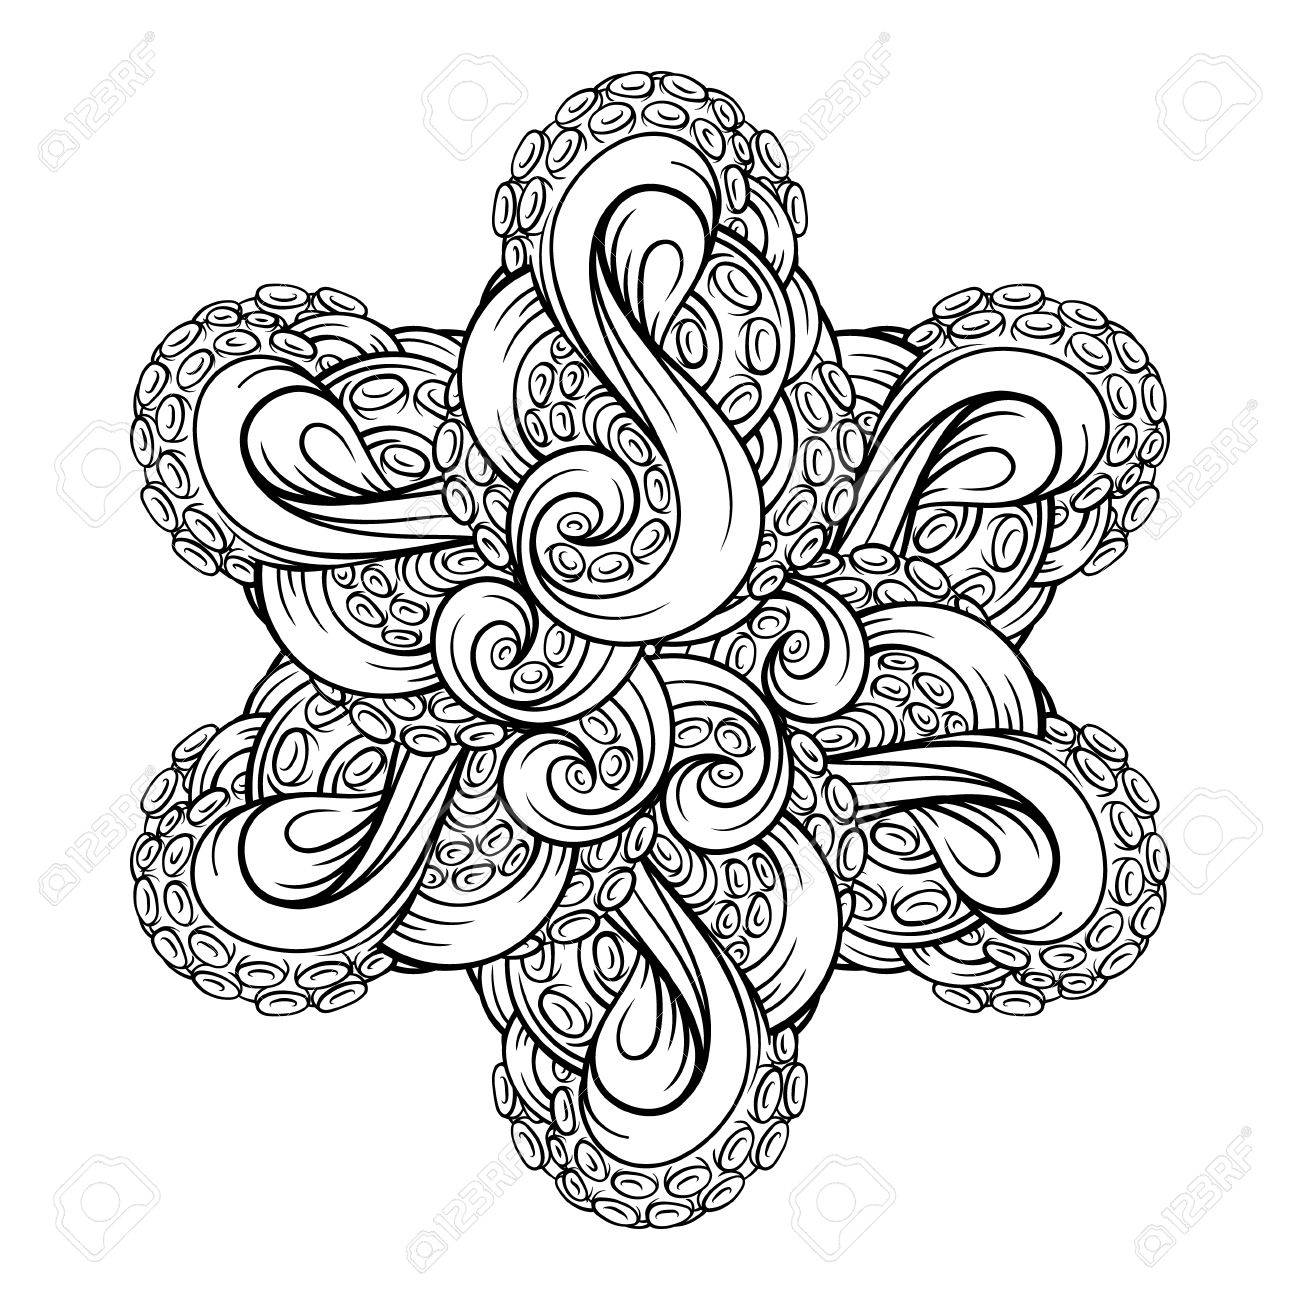 black and white octopus tentacles star shape pattern royalty free